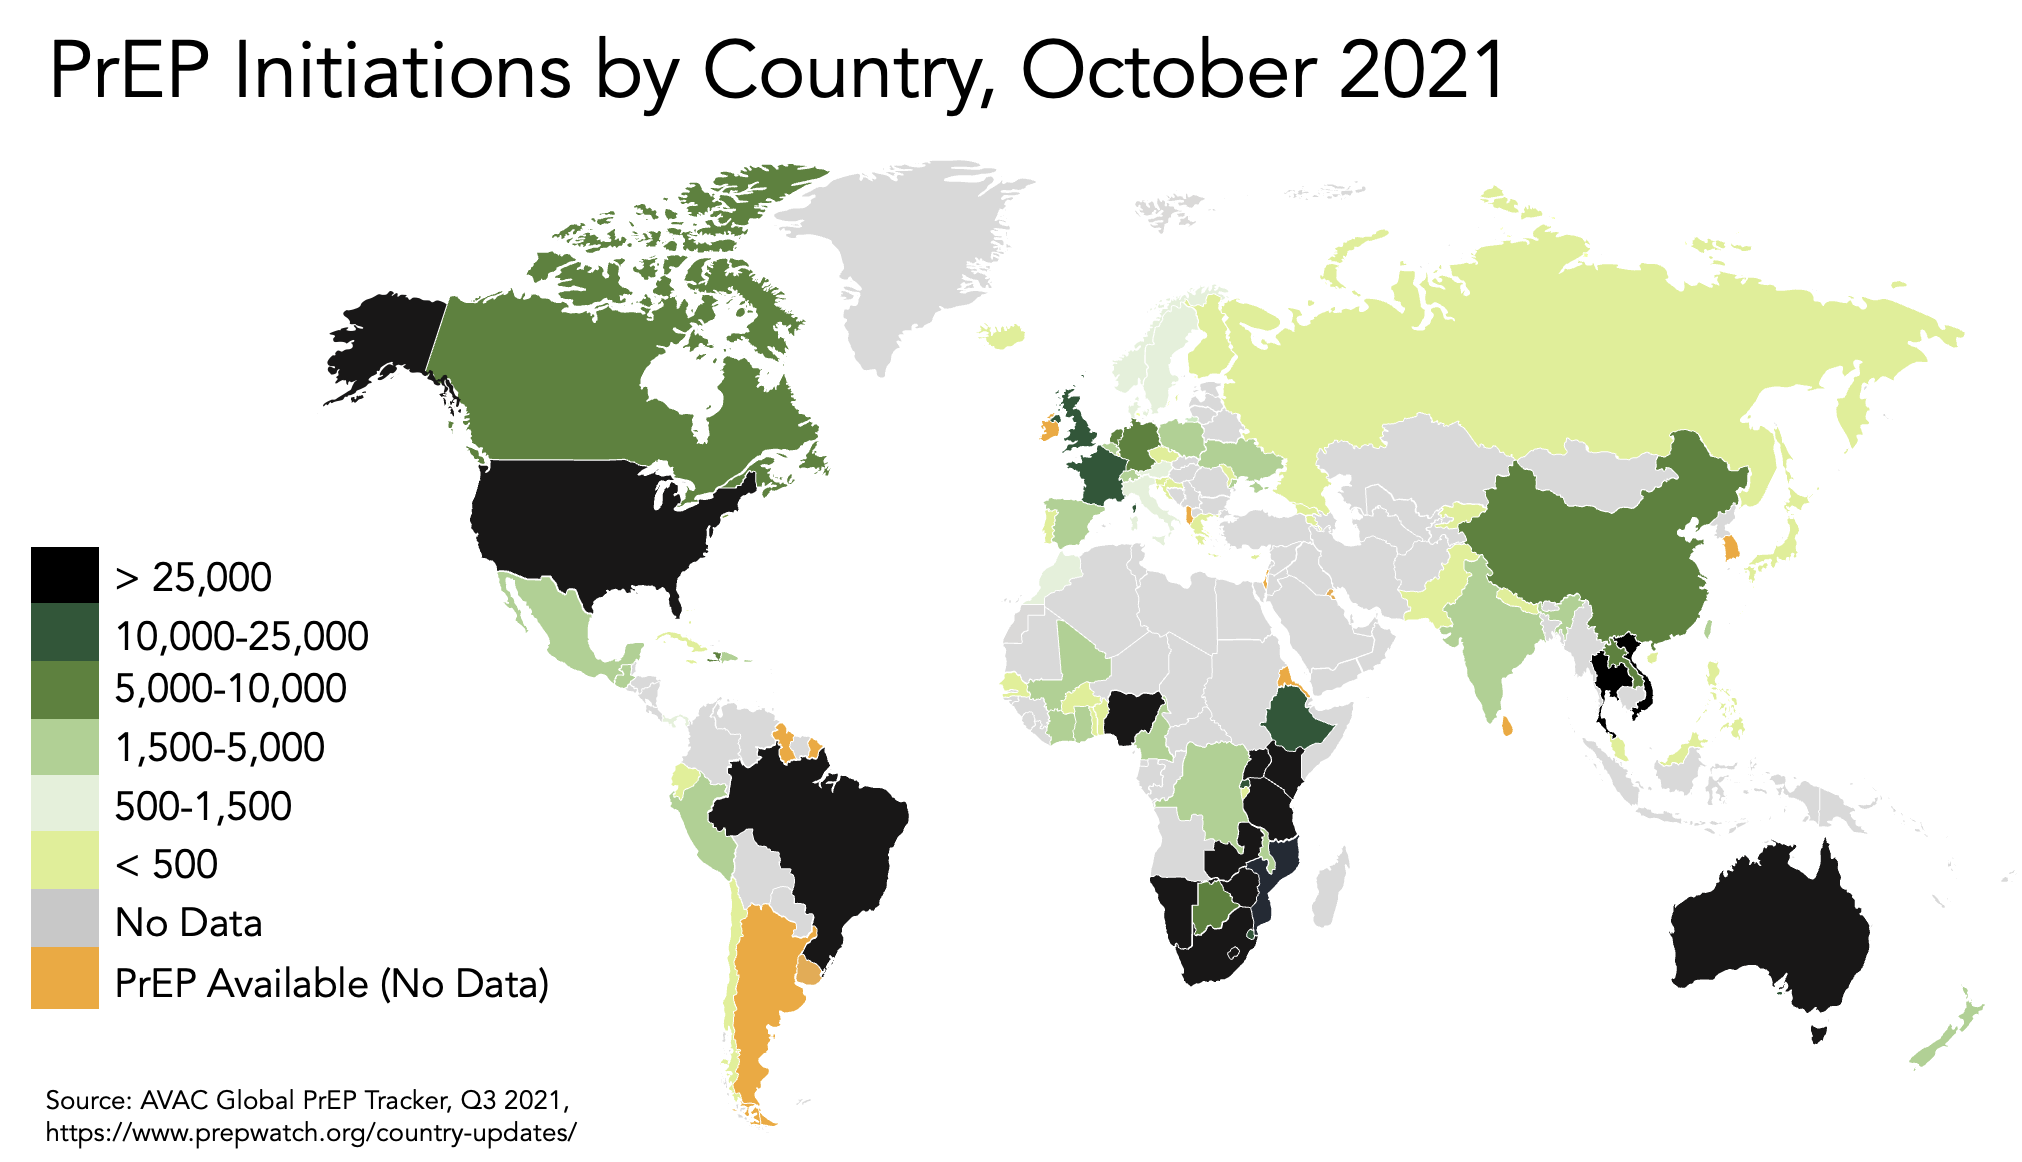 map of PrEP initiations by country